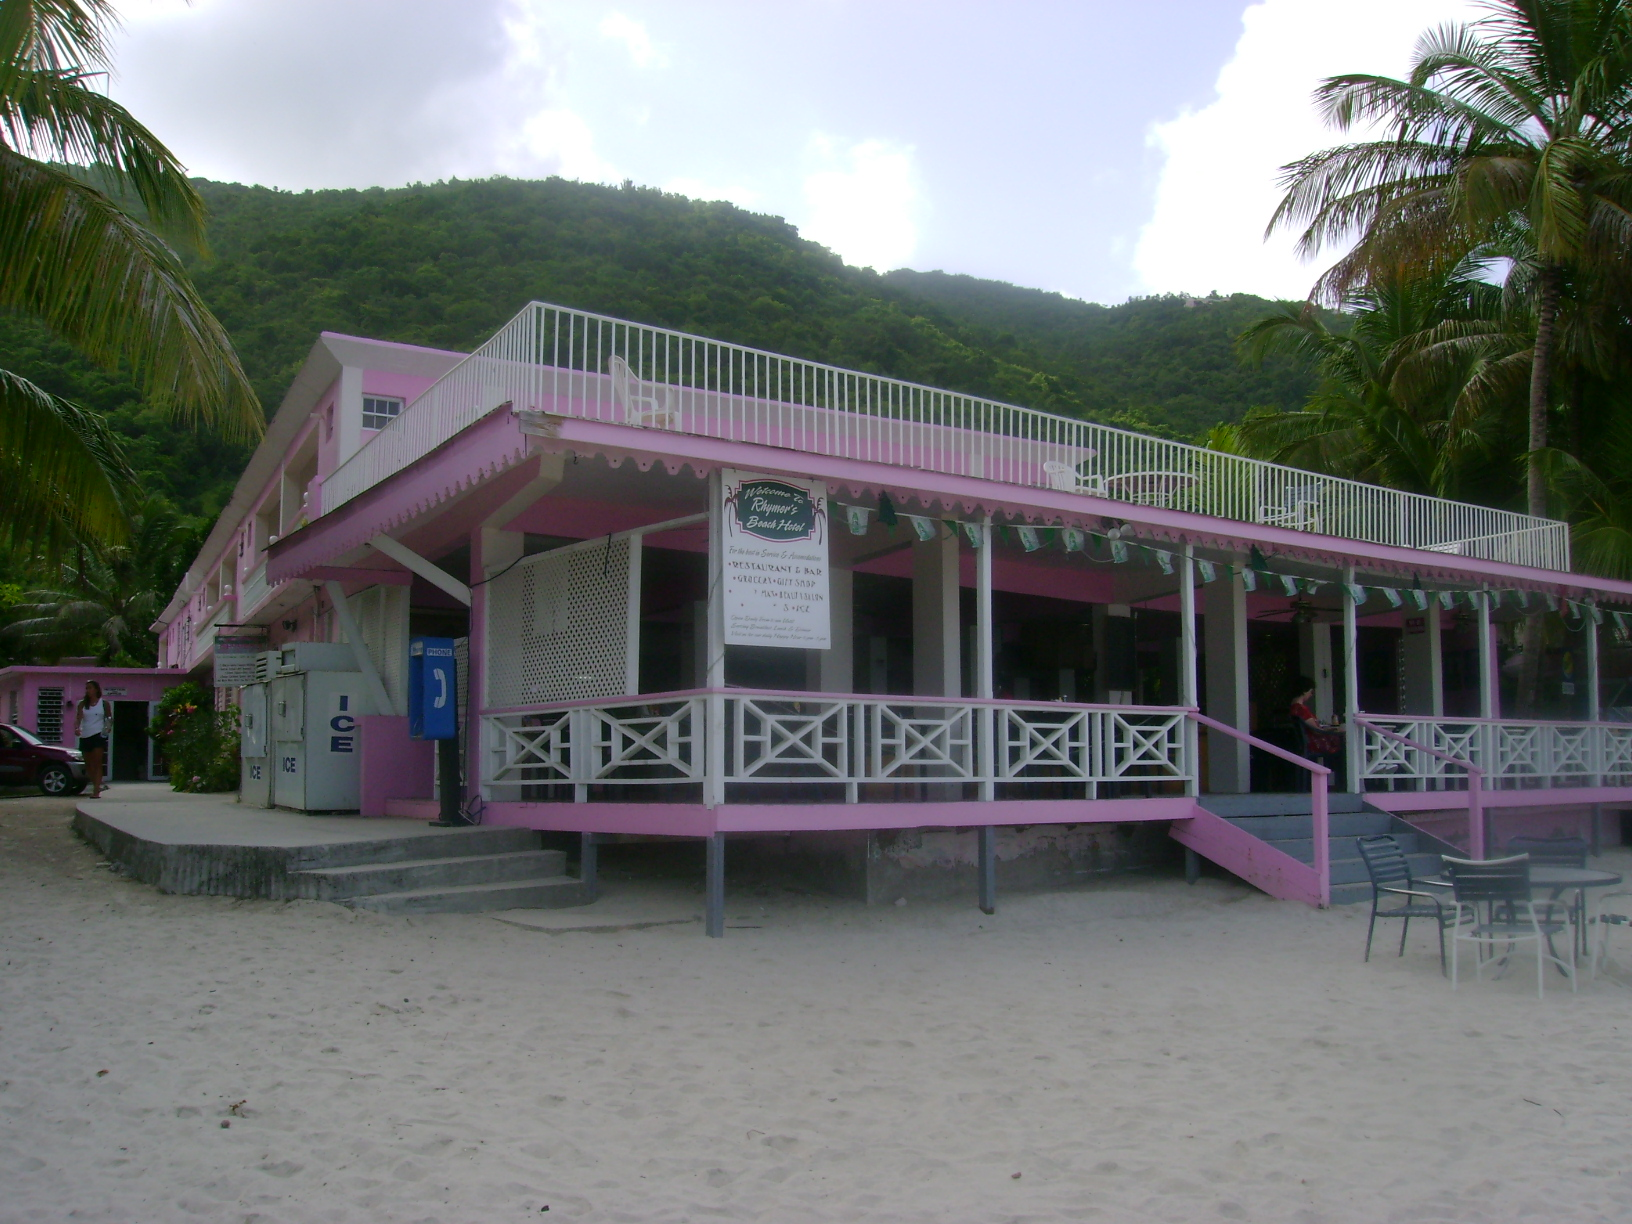 Rhymers Beach Hotel